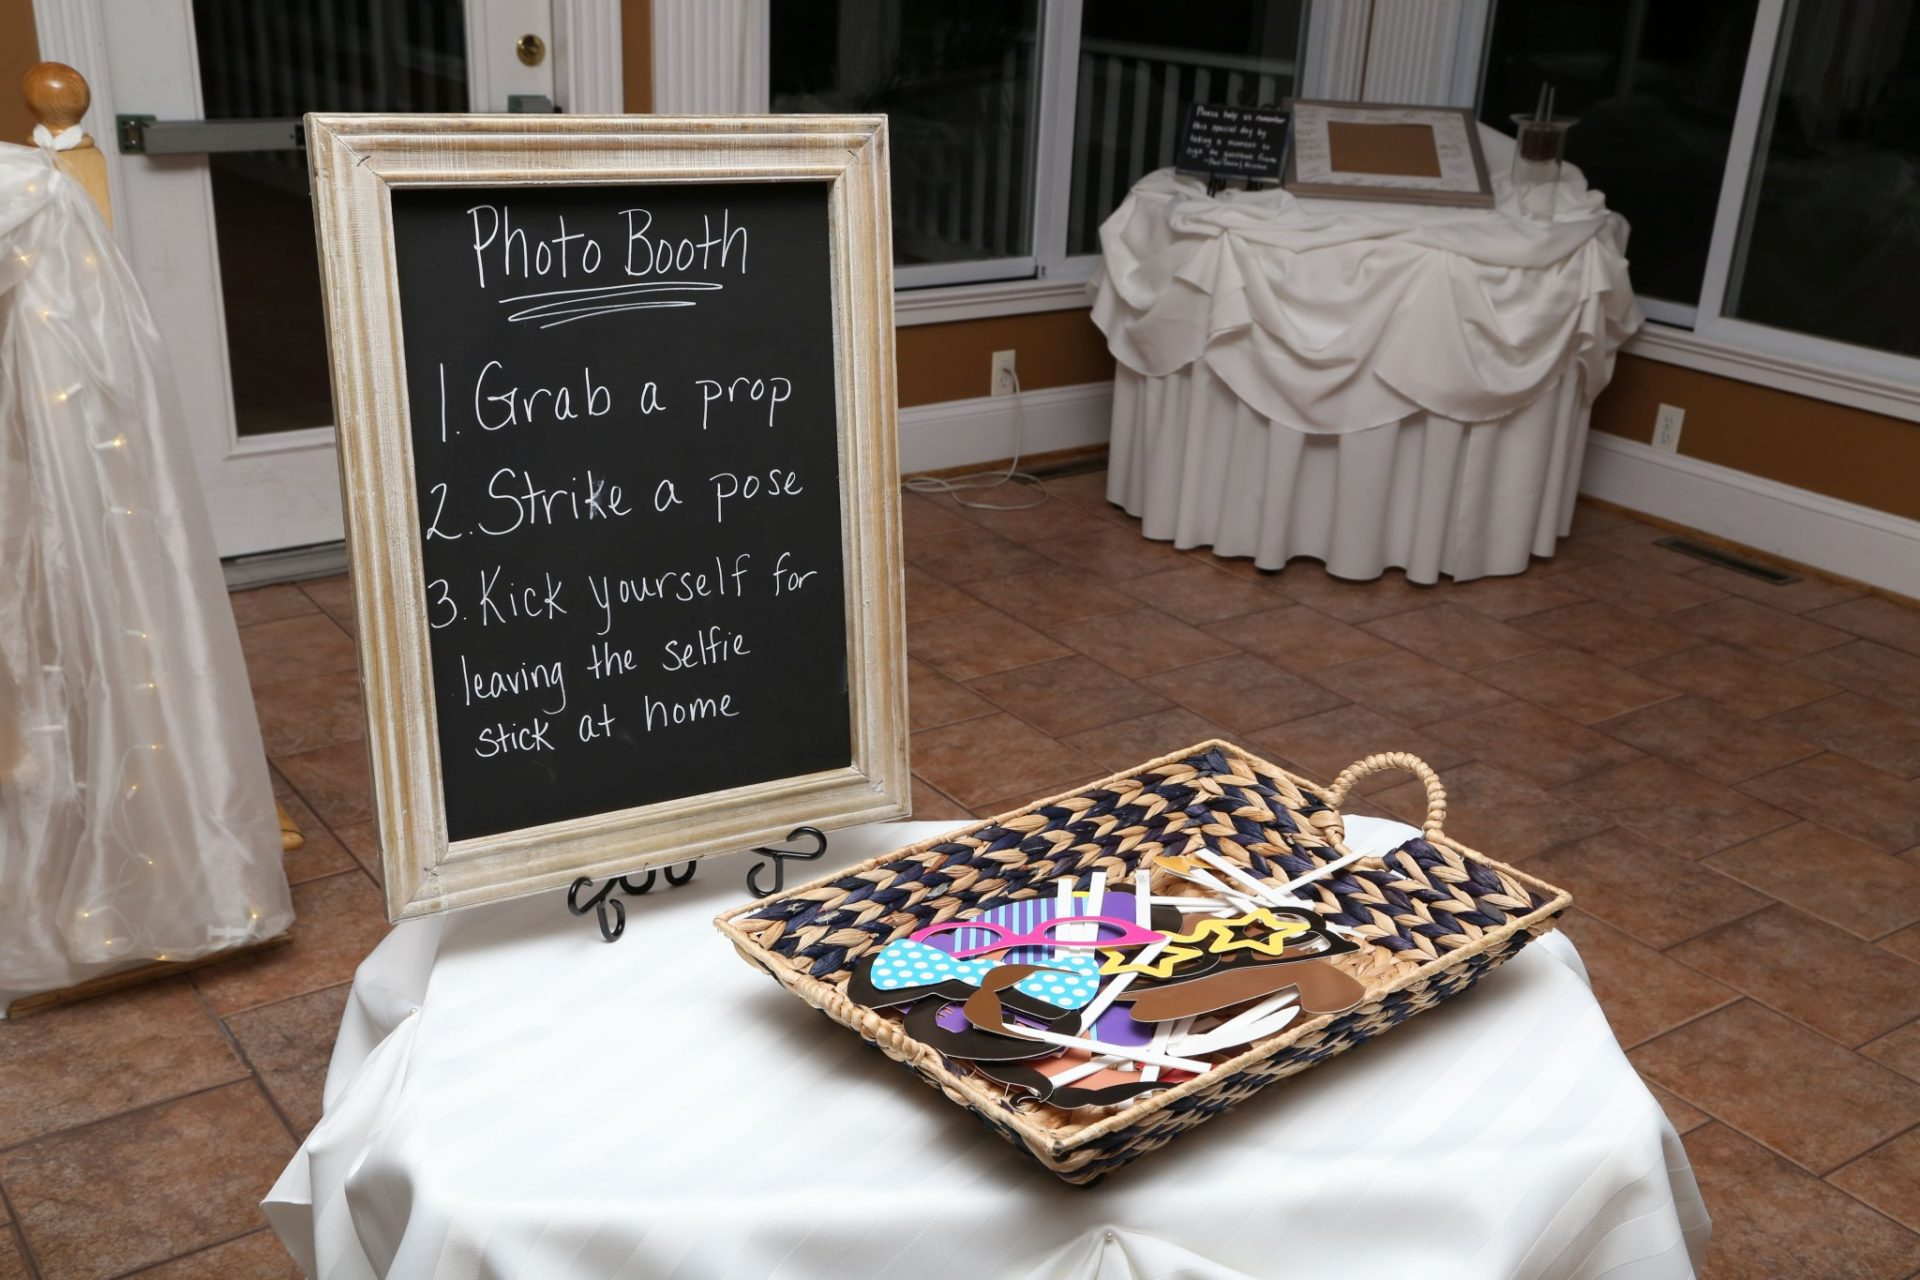 Many weddings in maryland have photo booths such as this one with fun props for guests to use.